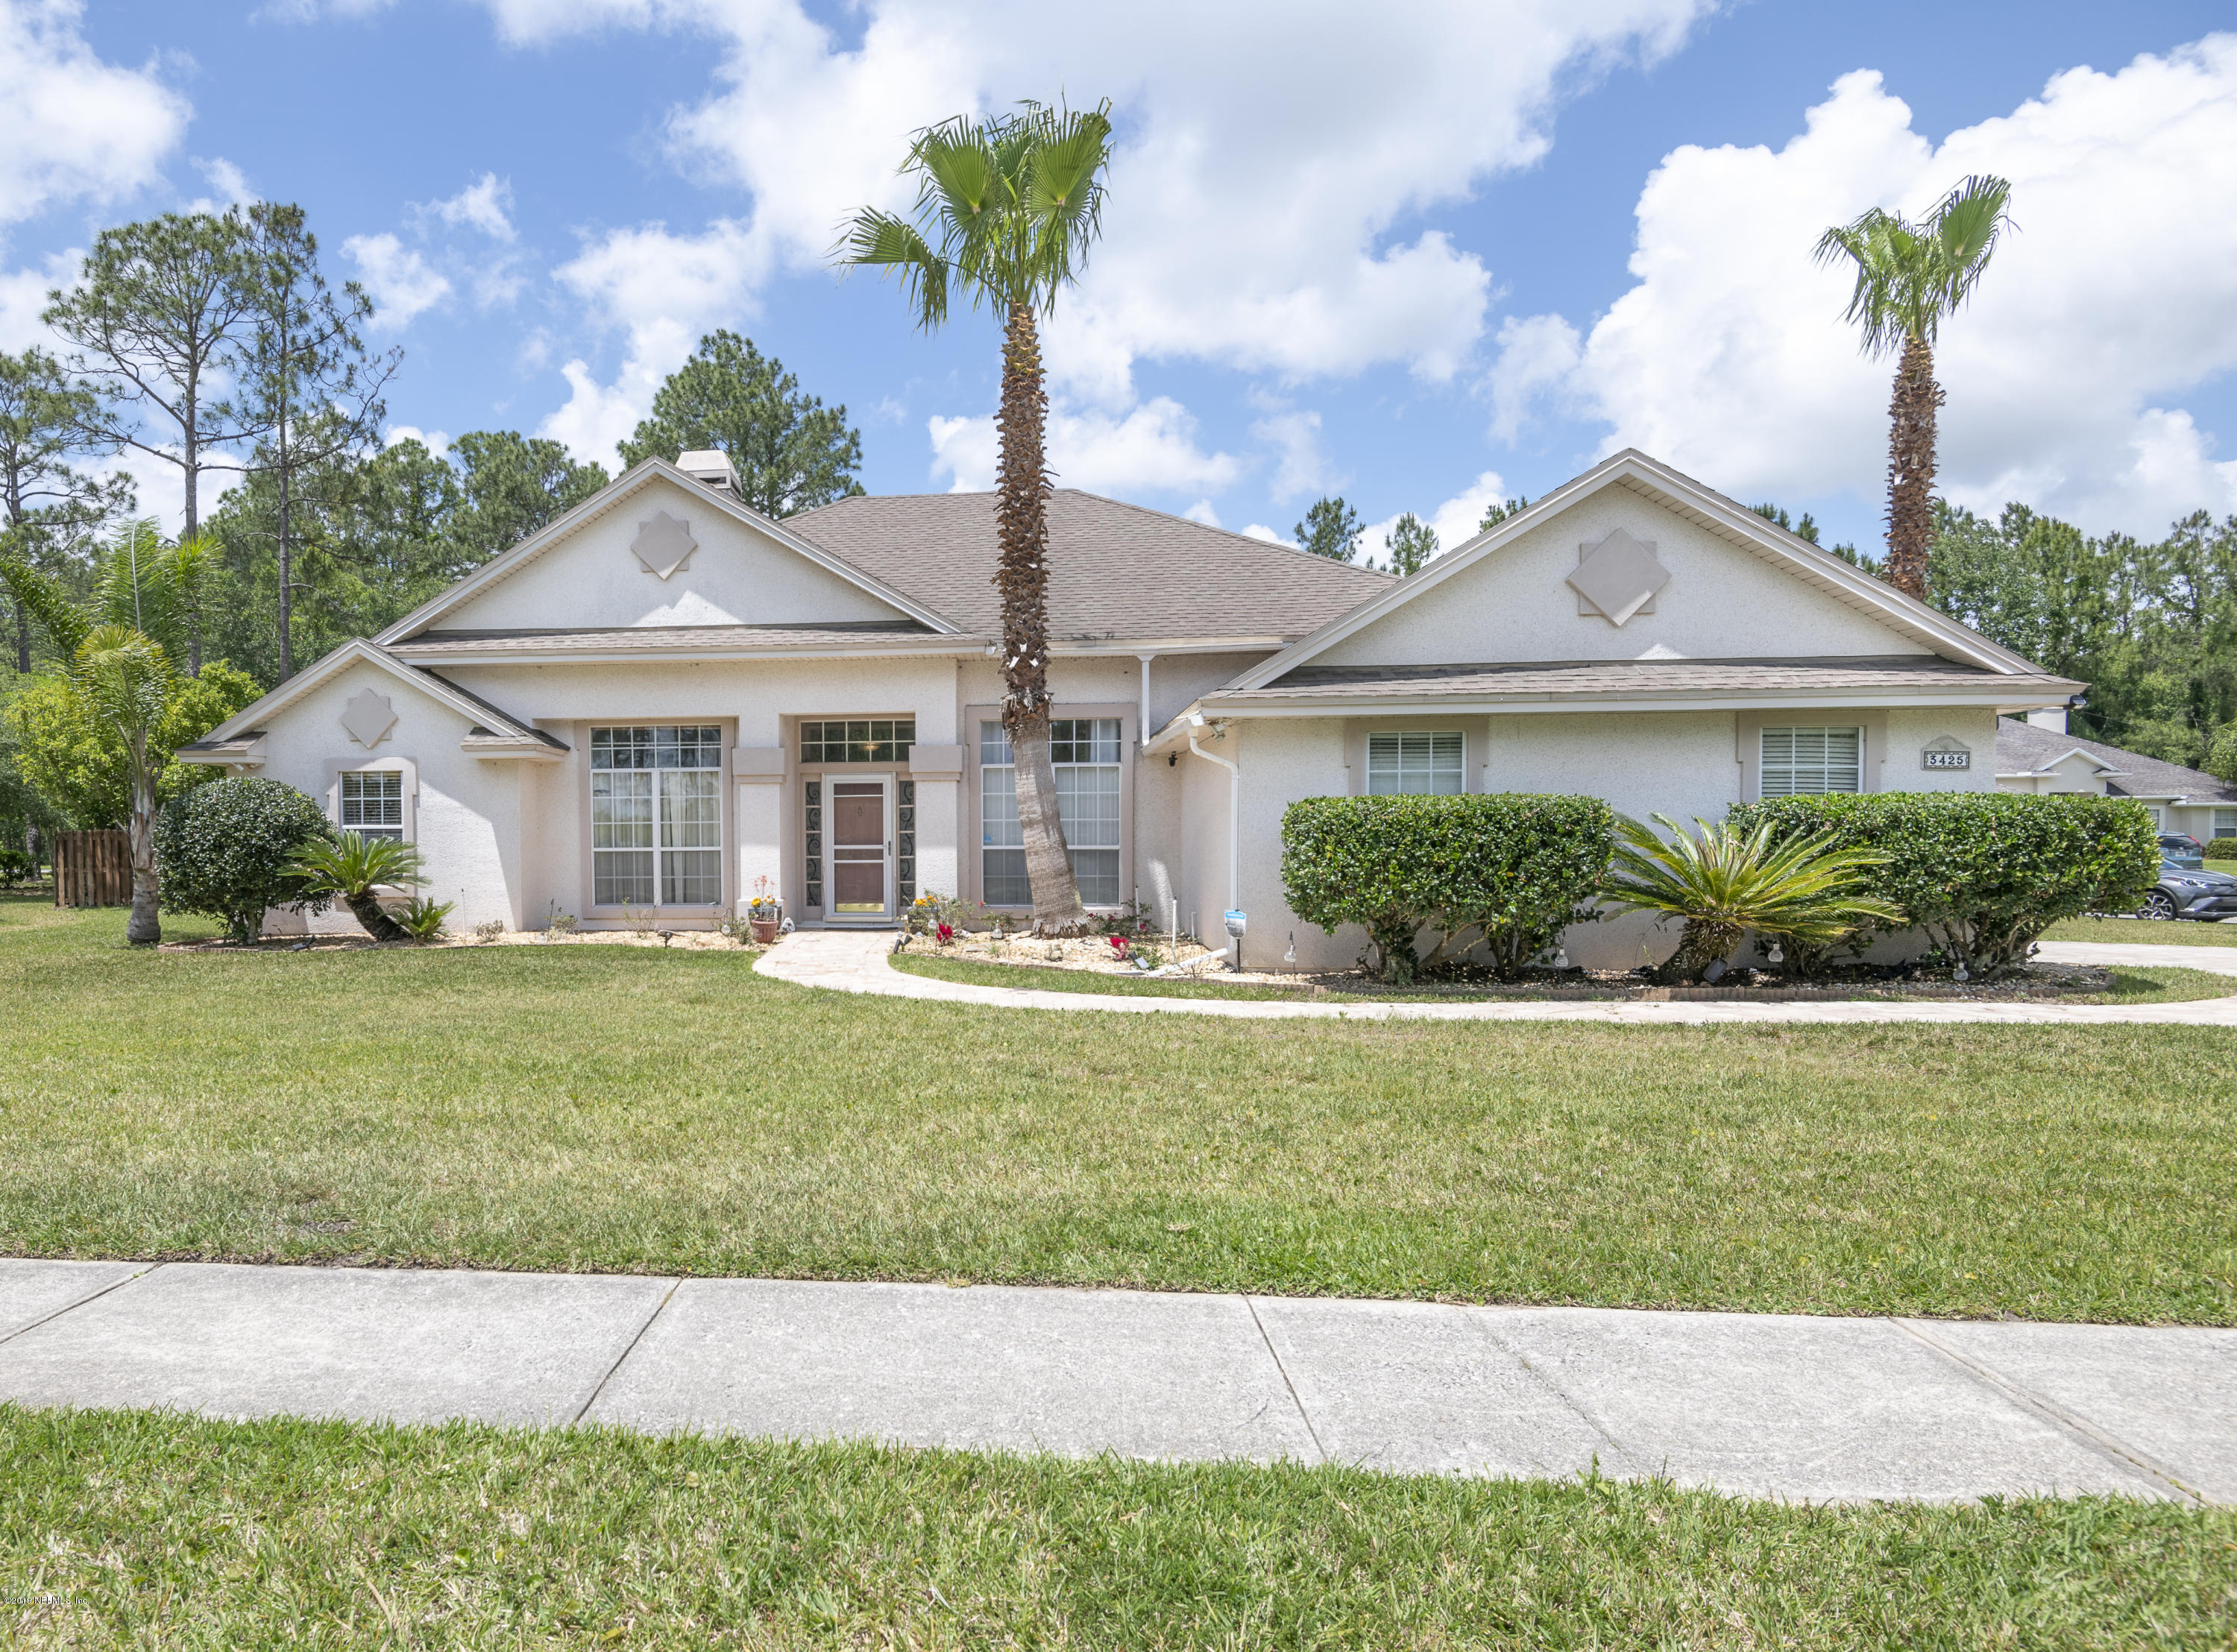 3425 INDIAN CREEK, ST JOHNS, FLORIDA 32259, 4 Bedrooms Bedrooms, ,3 BathroomsBathrooms,Residential - single family,For sale,INDIAN CREEK,987971